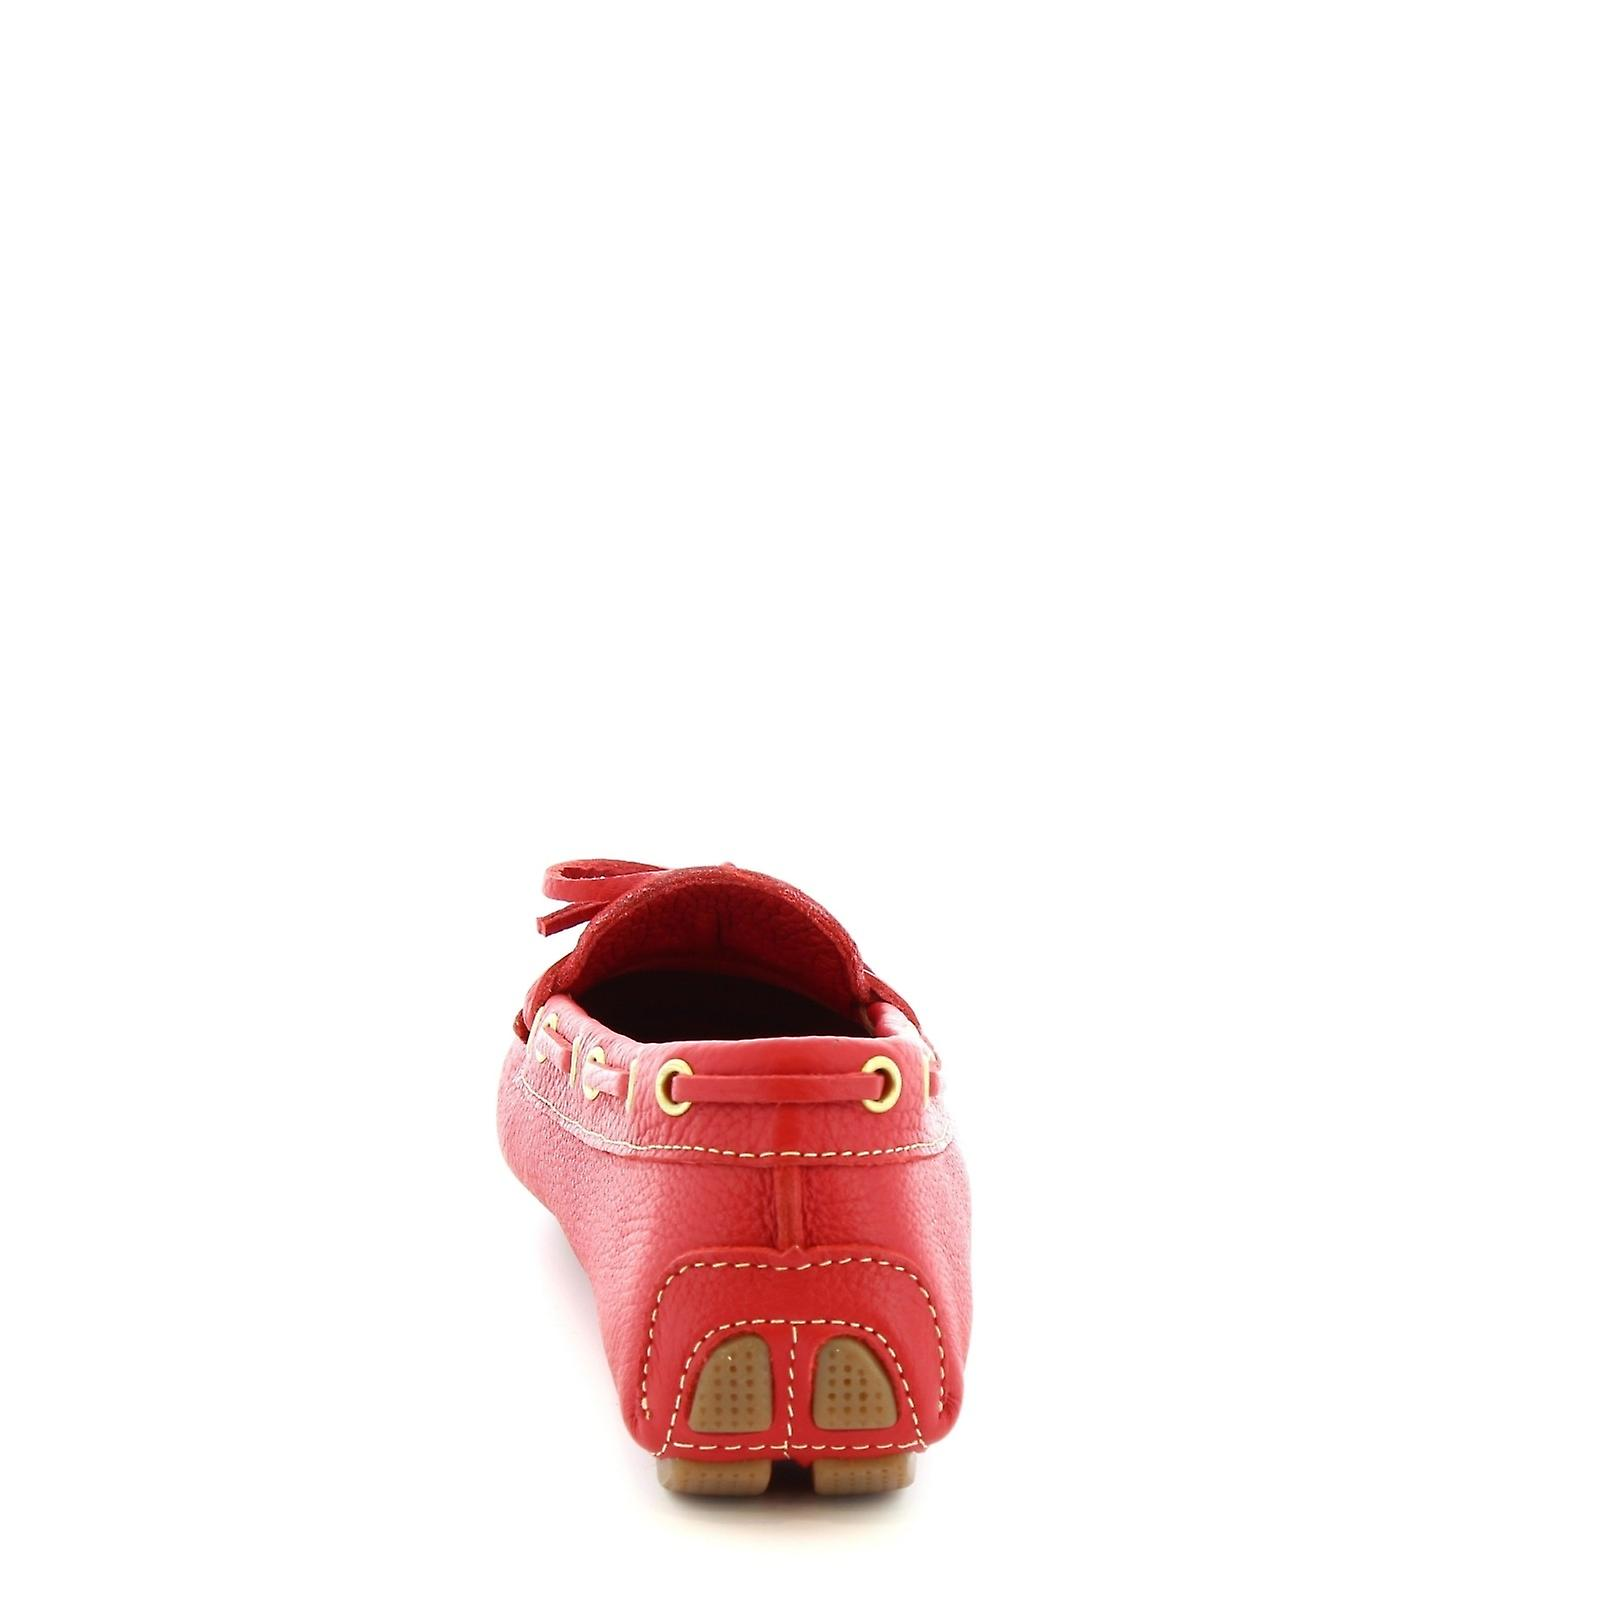 Leonardo Shoes women's handmade boat mocassins in red calf leather